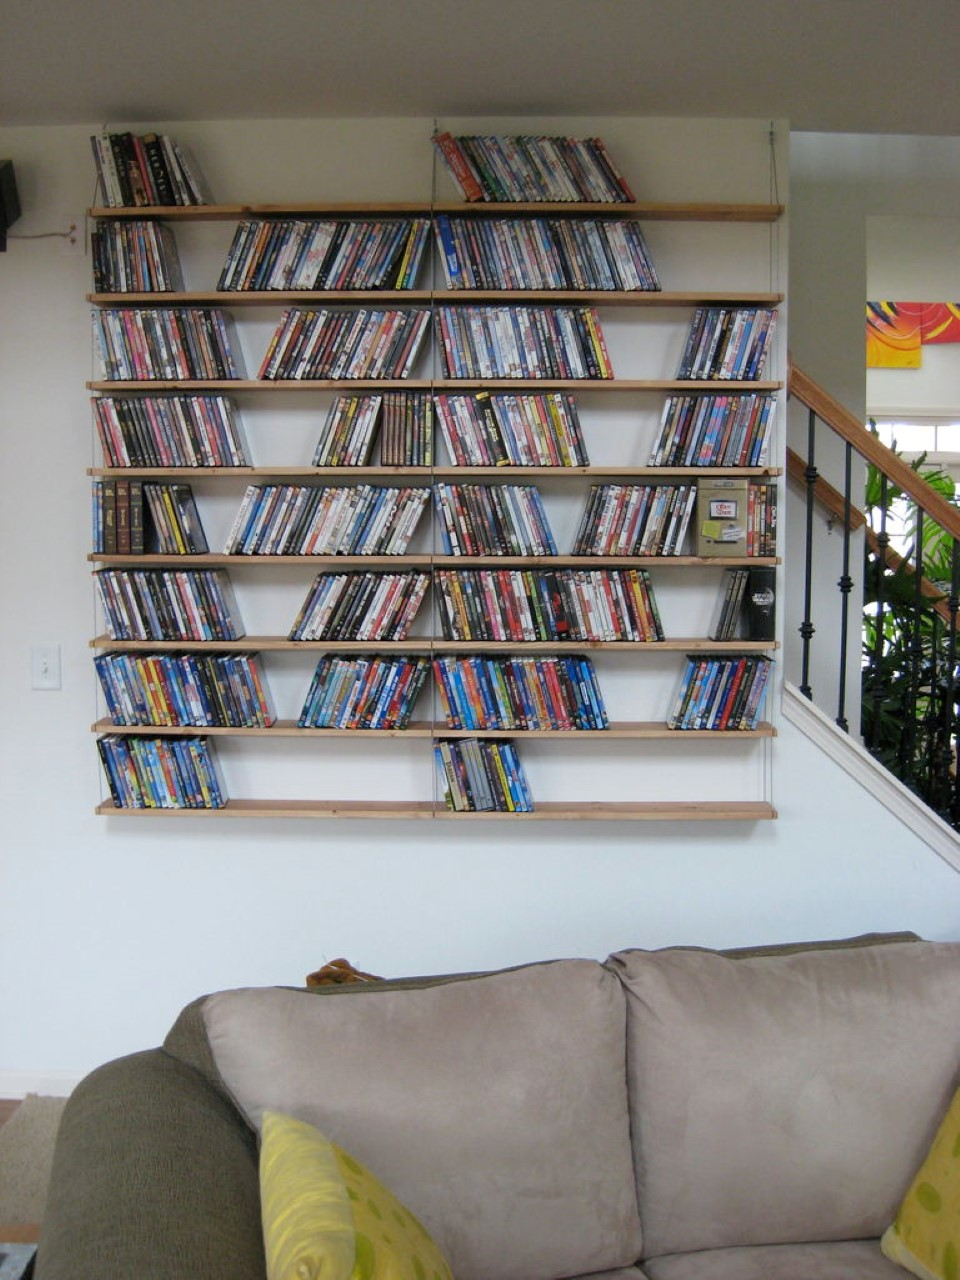 Unique Hanging Bookshelves Wall That Worth To Own Homesfeed Interiors Inside Ideas Interiors design about Everything [magnanprojects.com]